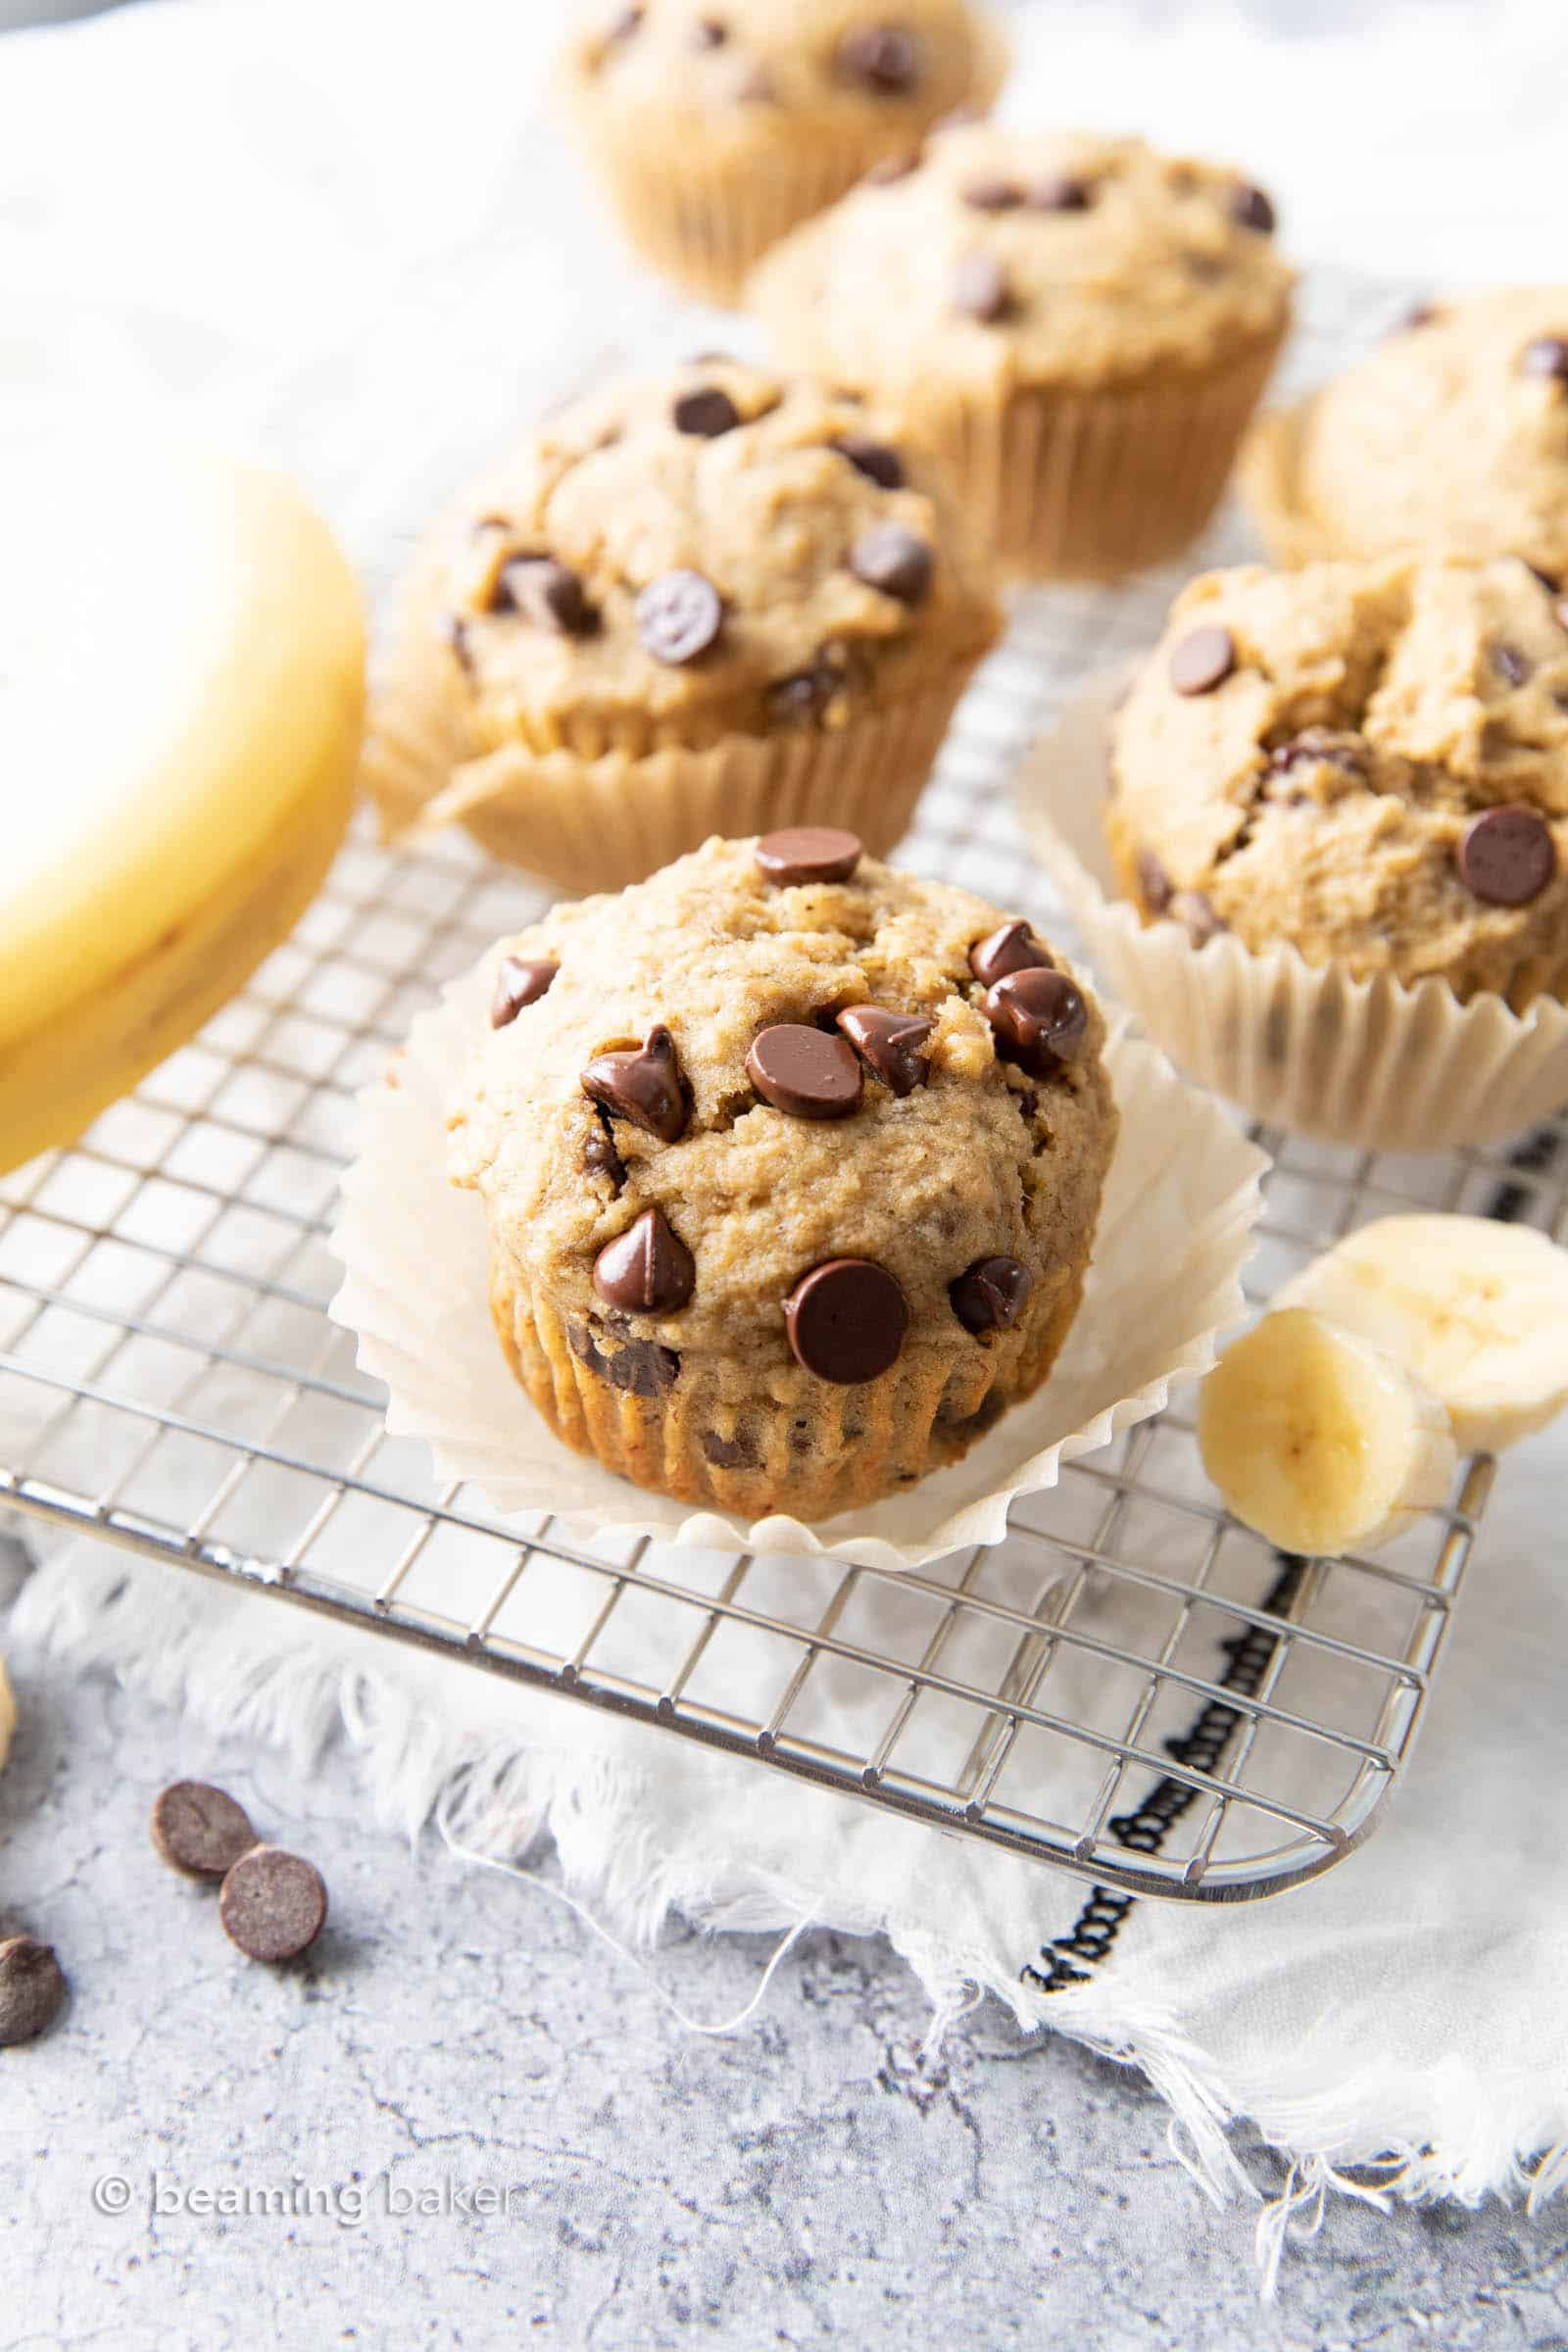 Healthy Banana Chocolate Chip Muffins: soft & moist banana bread muffins with sky-high, crispy tops, melty chocolate chips & BIG banana flavor. Whole ingredients, Plant-Based. #Muffins #Bananas #Chocolate #Healthy | Recipe at BeamingBaker.com